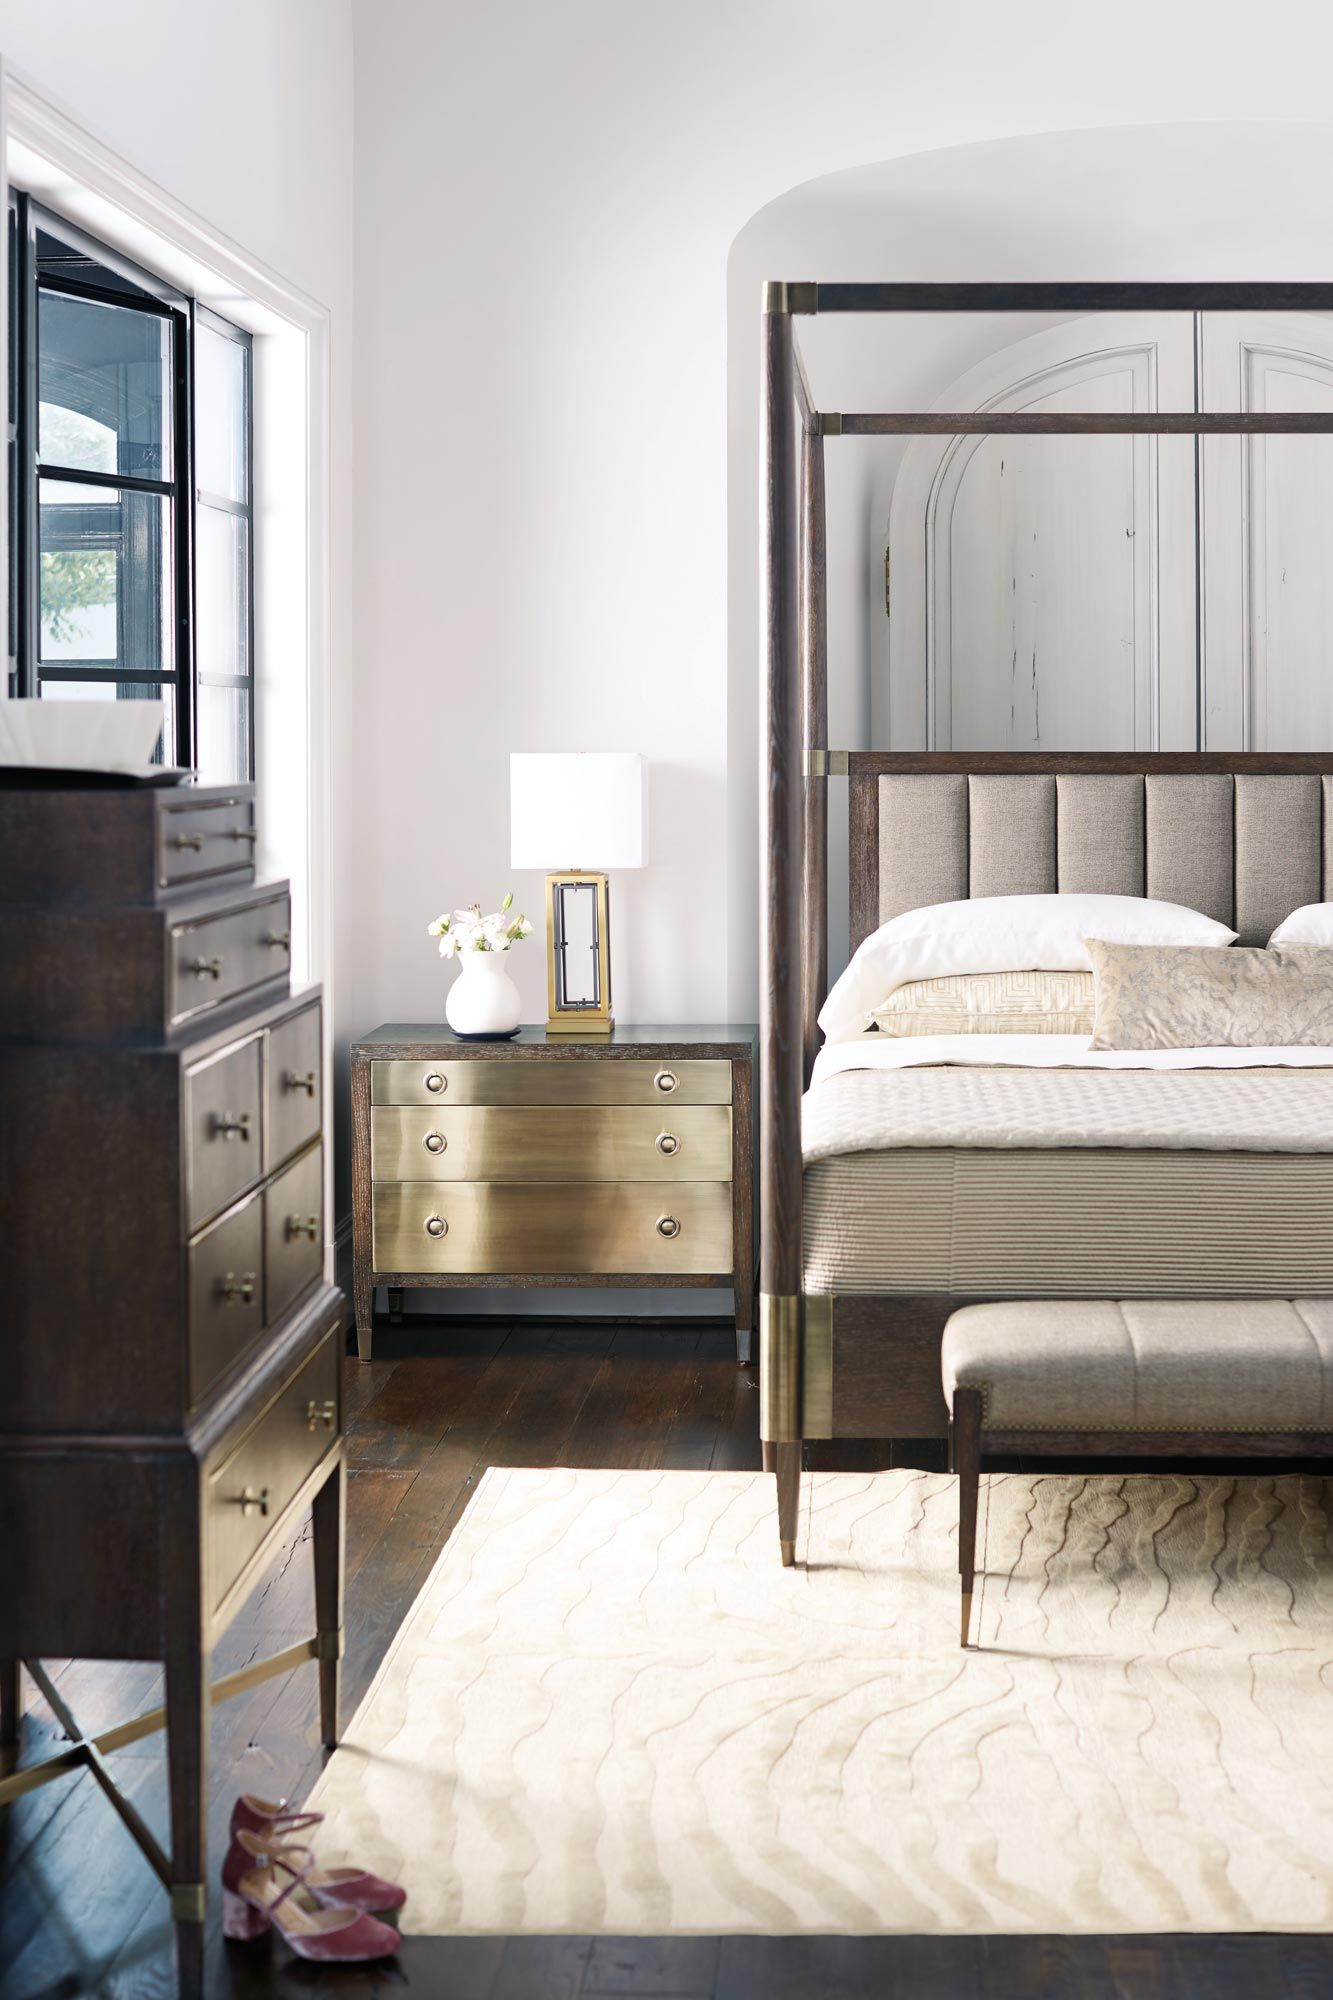 Find Bernhardt's sophisticated style for your bedroom at